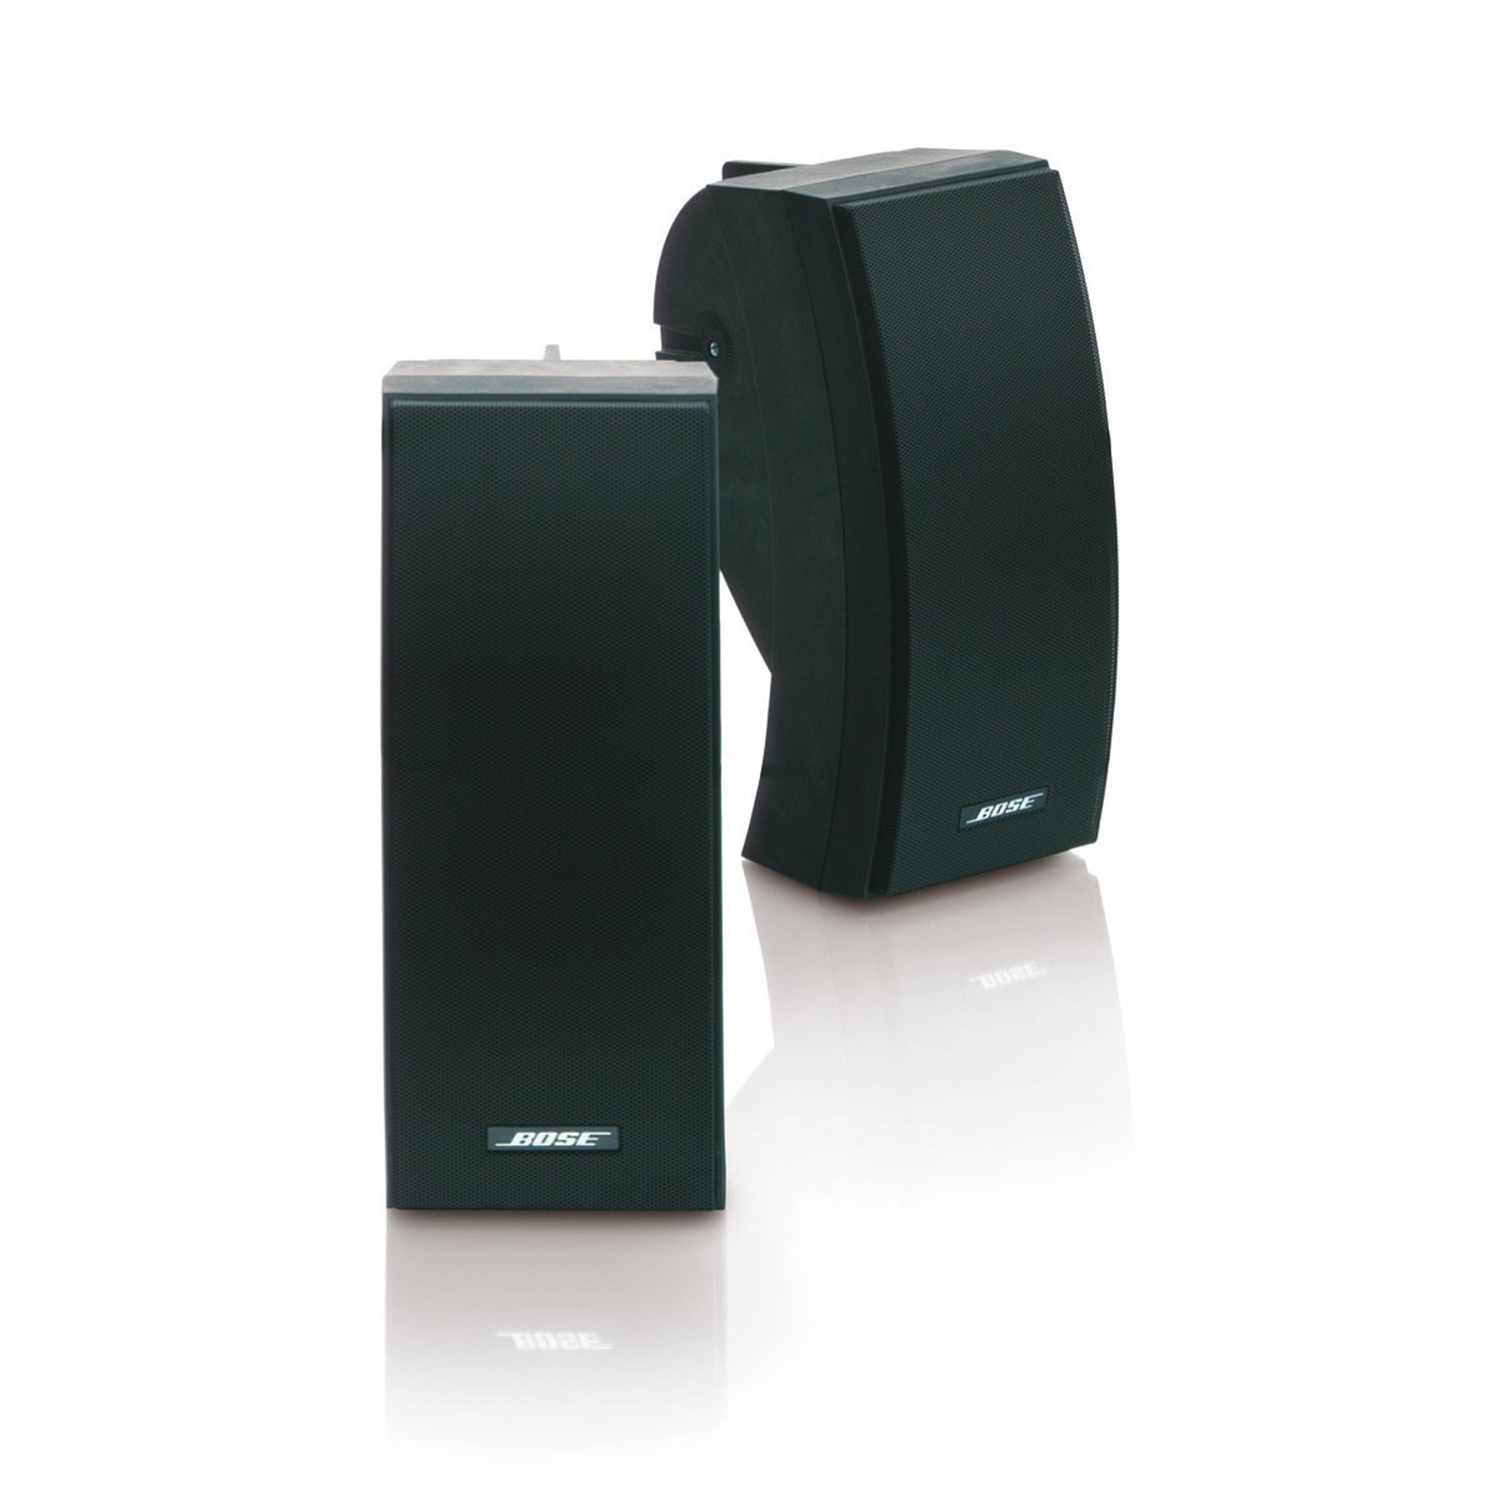 Bose 251 174 Wall Mount Outdoor Environmental Speakers